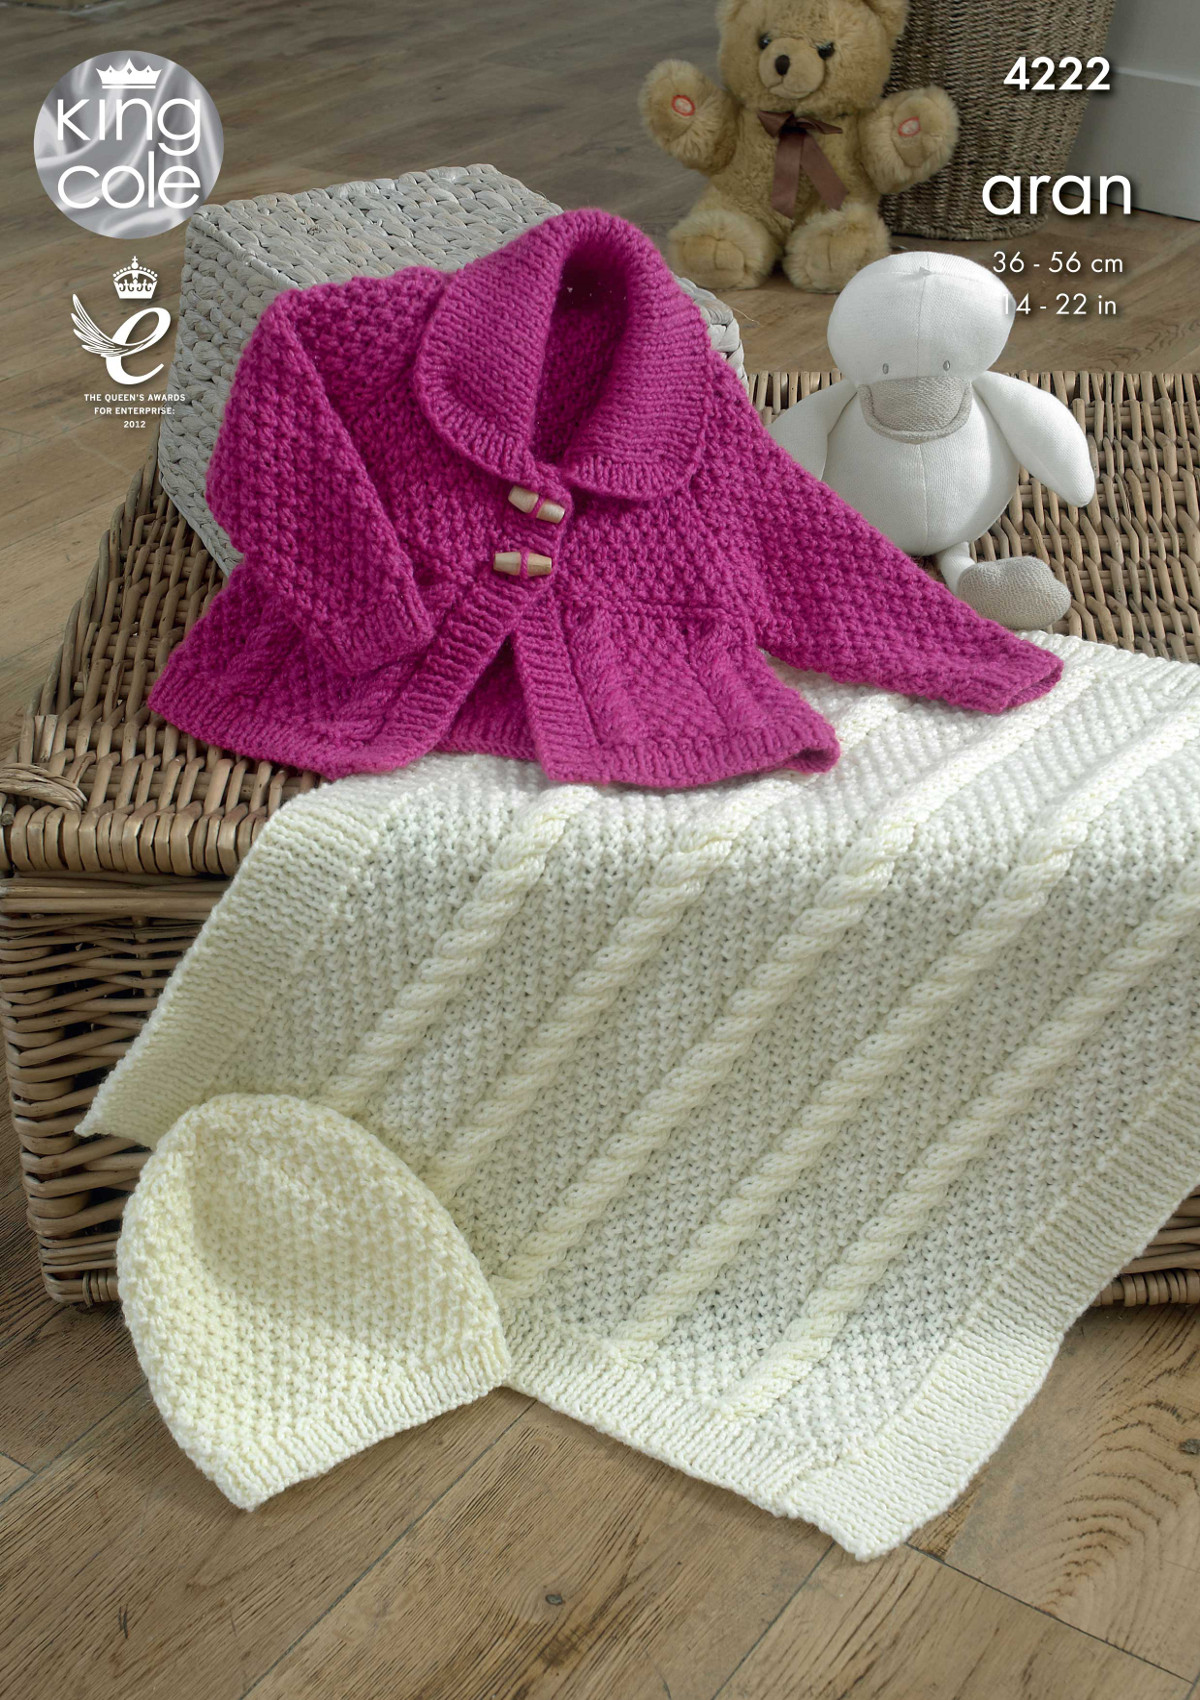 Knitting Pattern King Cole : Baby Knitting Pattern King Cole Blanket, Jacket and Hat ...